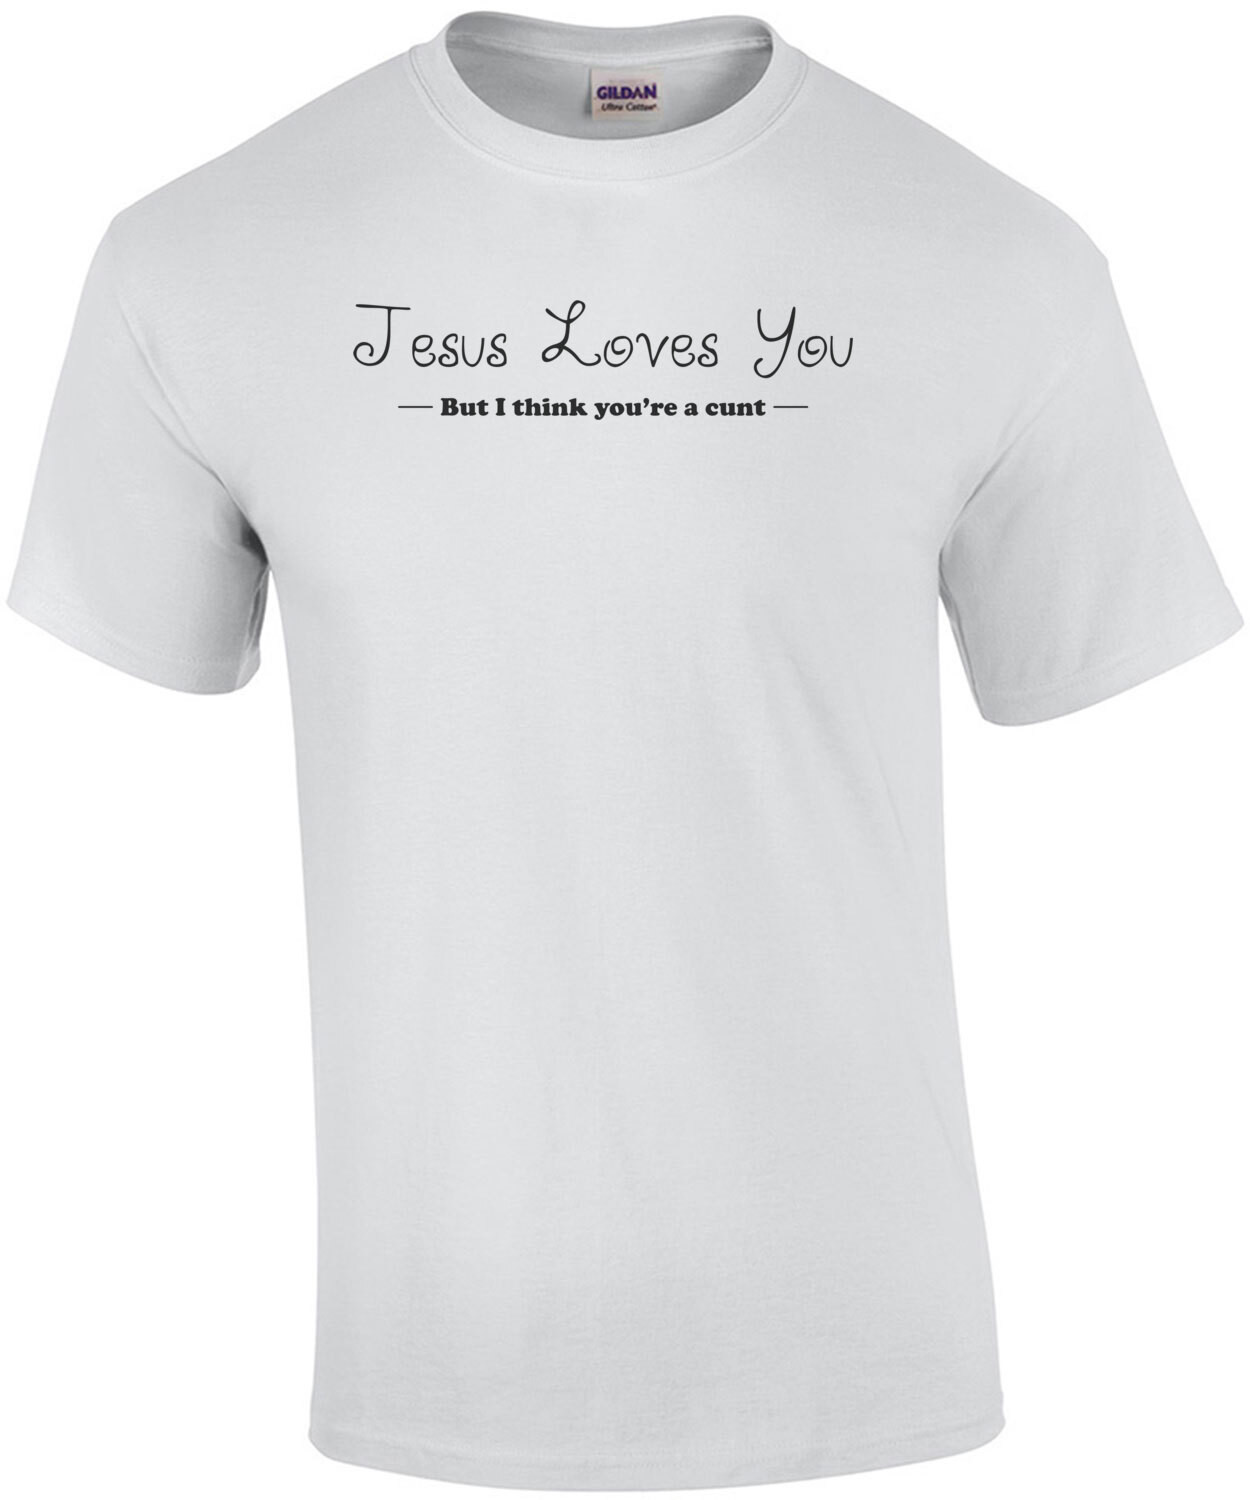 JESUS LOVES YOU! I THINK YOU'RE A CUNT! Shirt